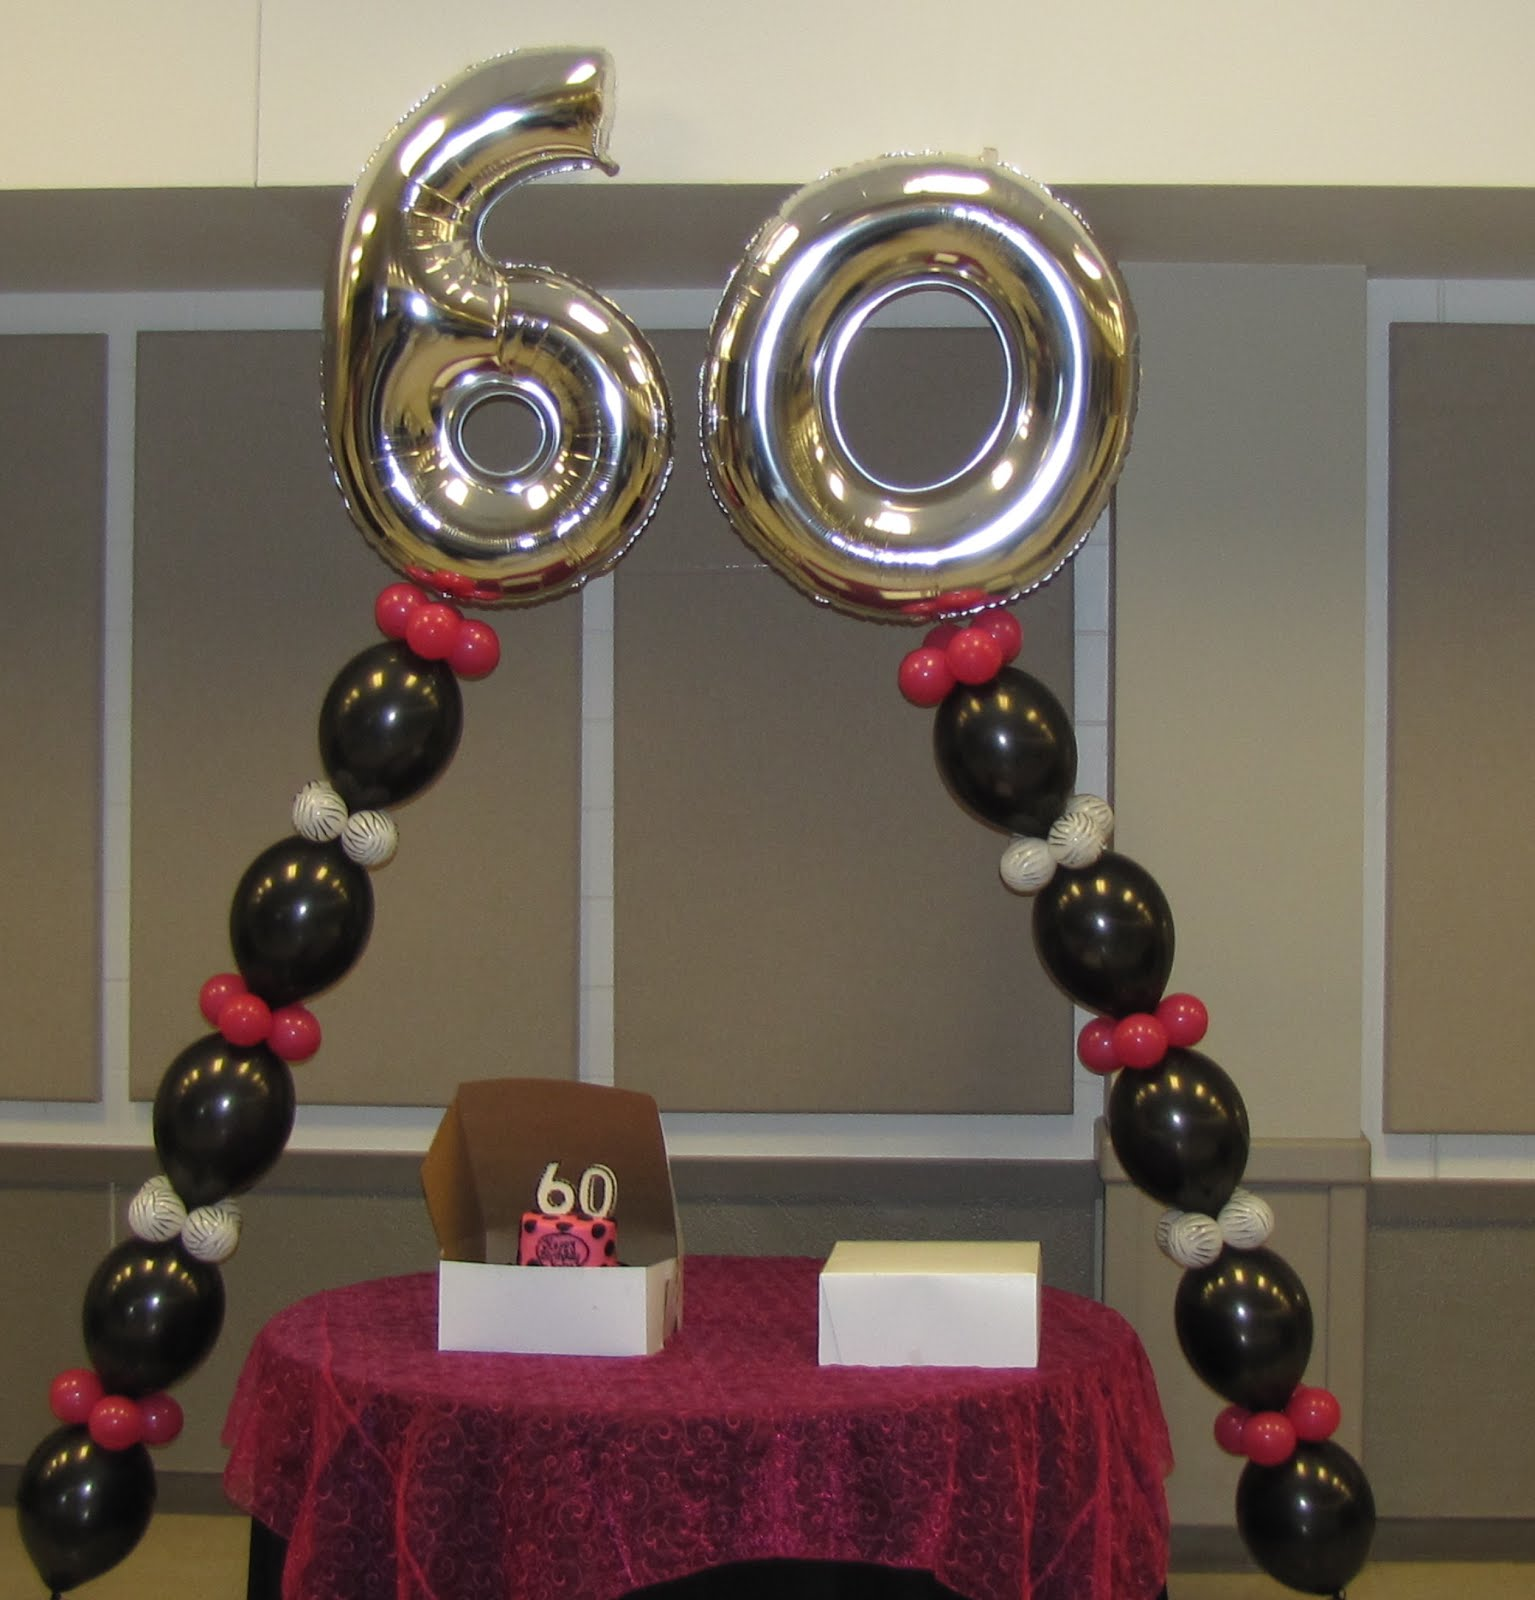 60th Birthday Homemade Decorations Image Inspiration of Cake and